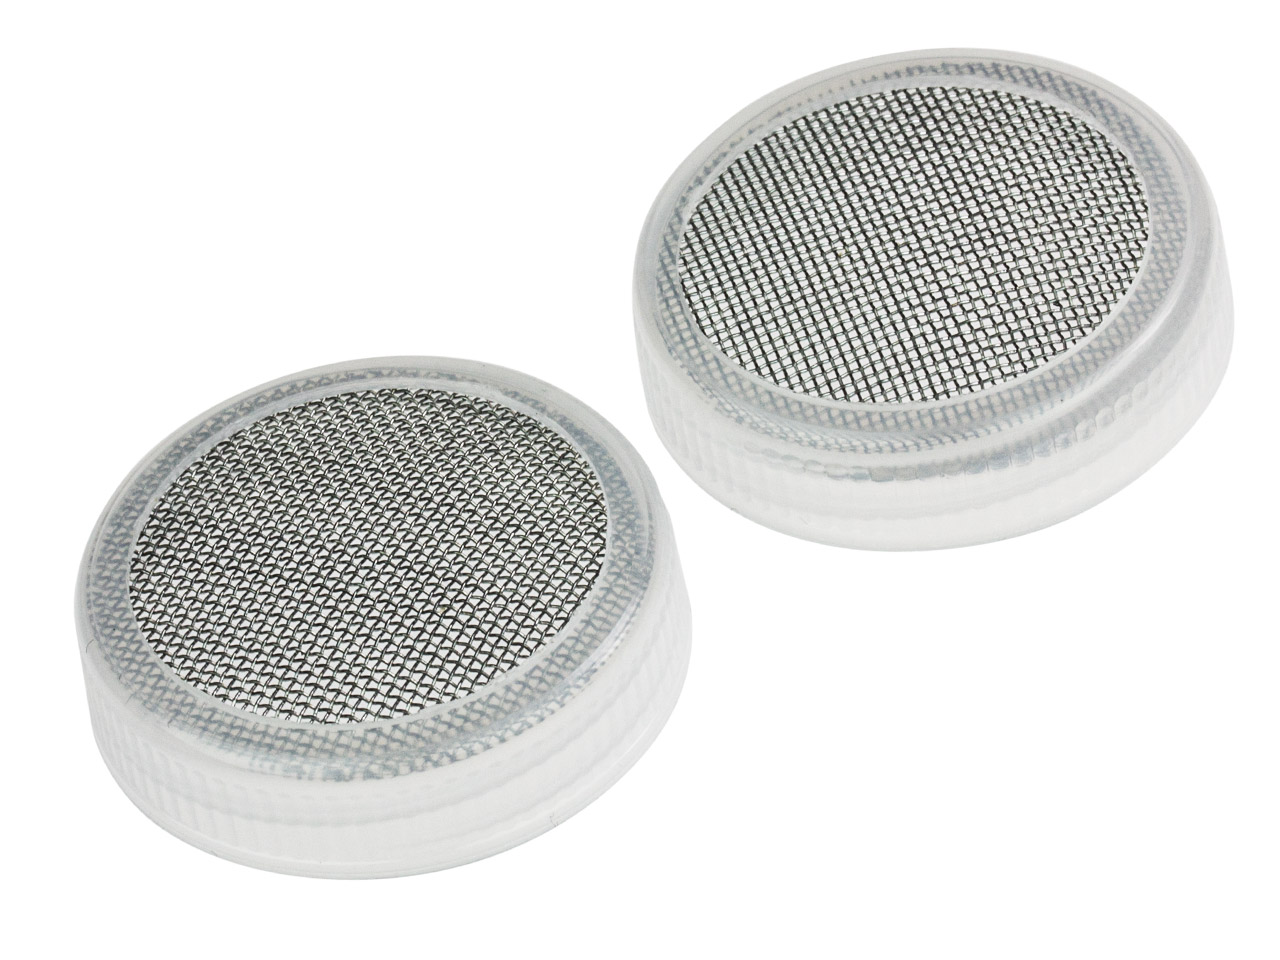 Sieve Tops, Pack of 2, 36mm